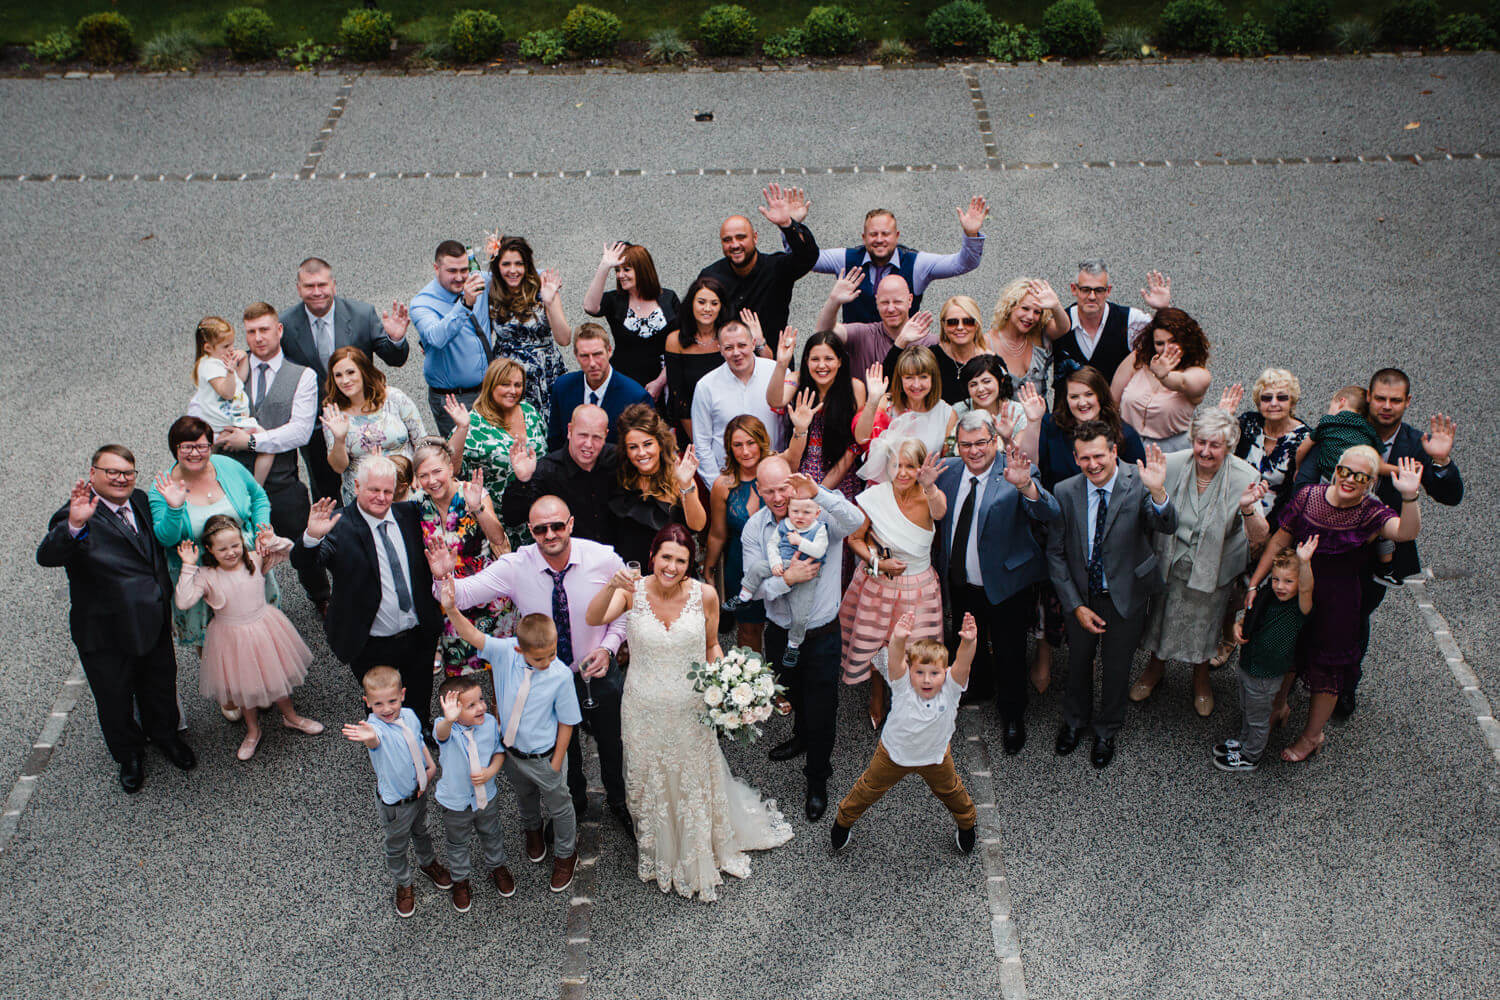 wide angle lens photograph of wedding party group photograph outside eleven didsbury park